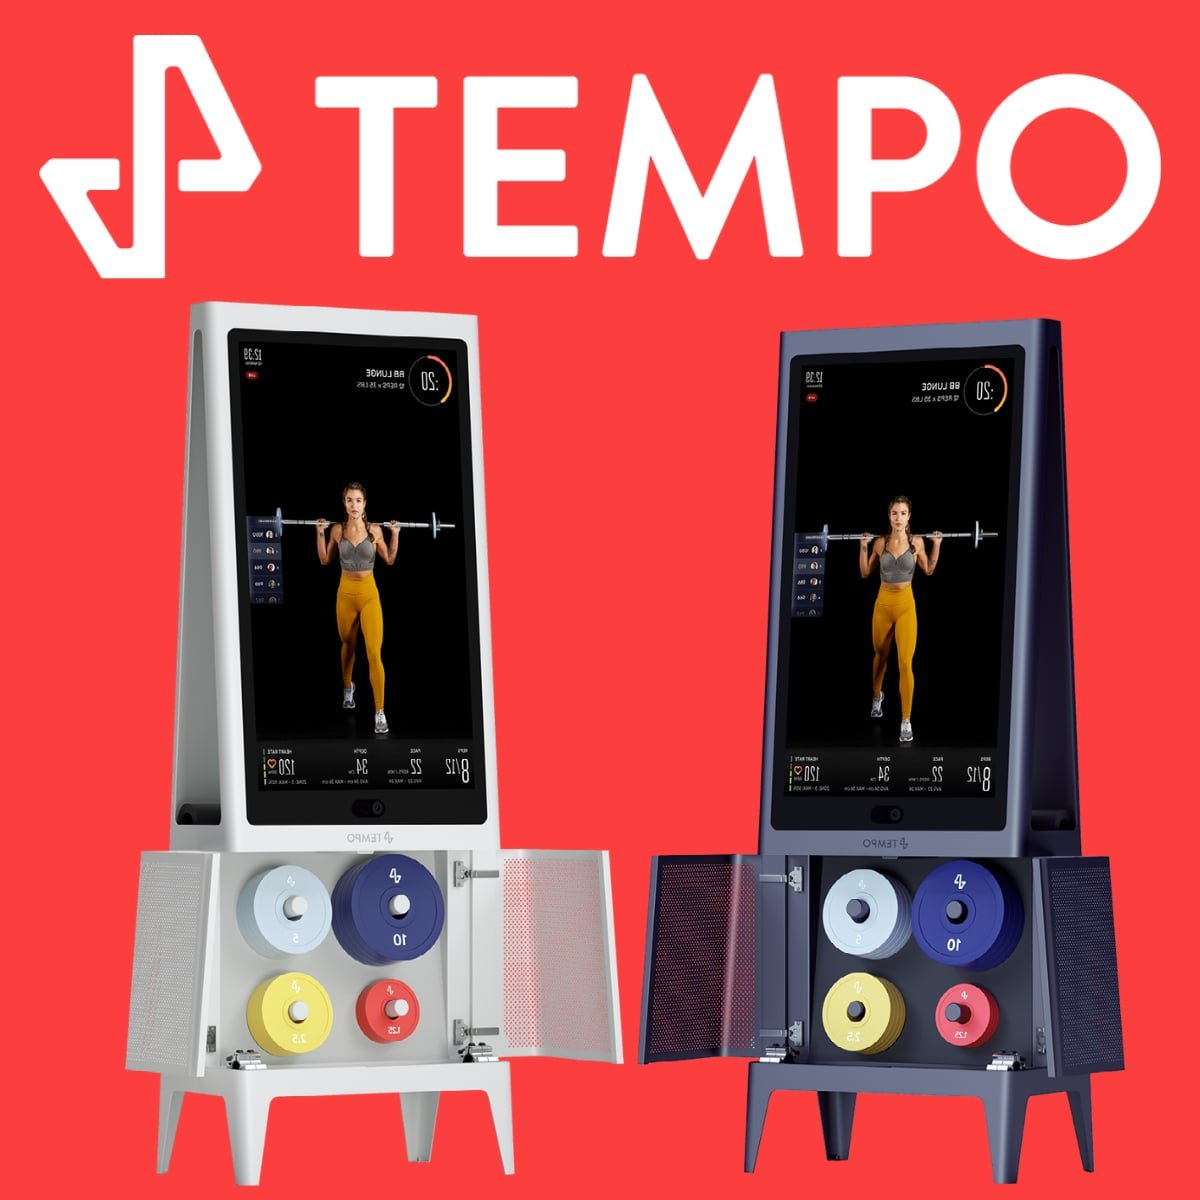 a look at the Tempo Studio (white and black machines) with a red background